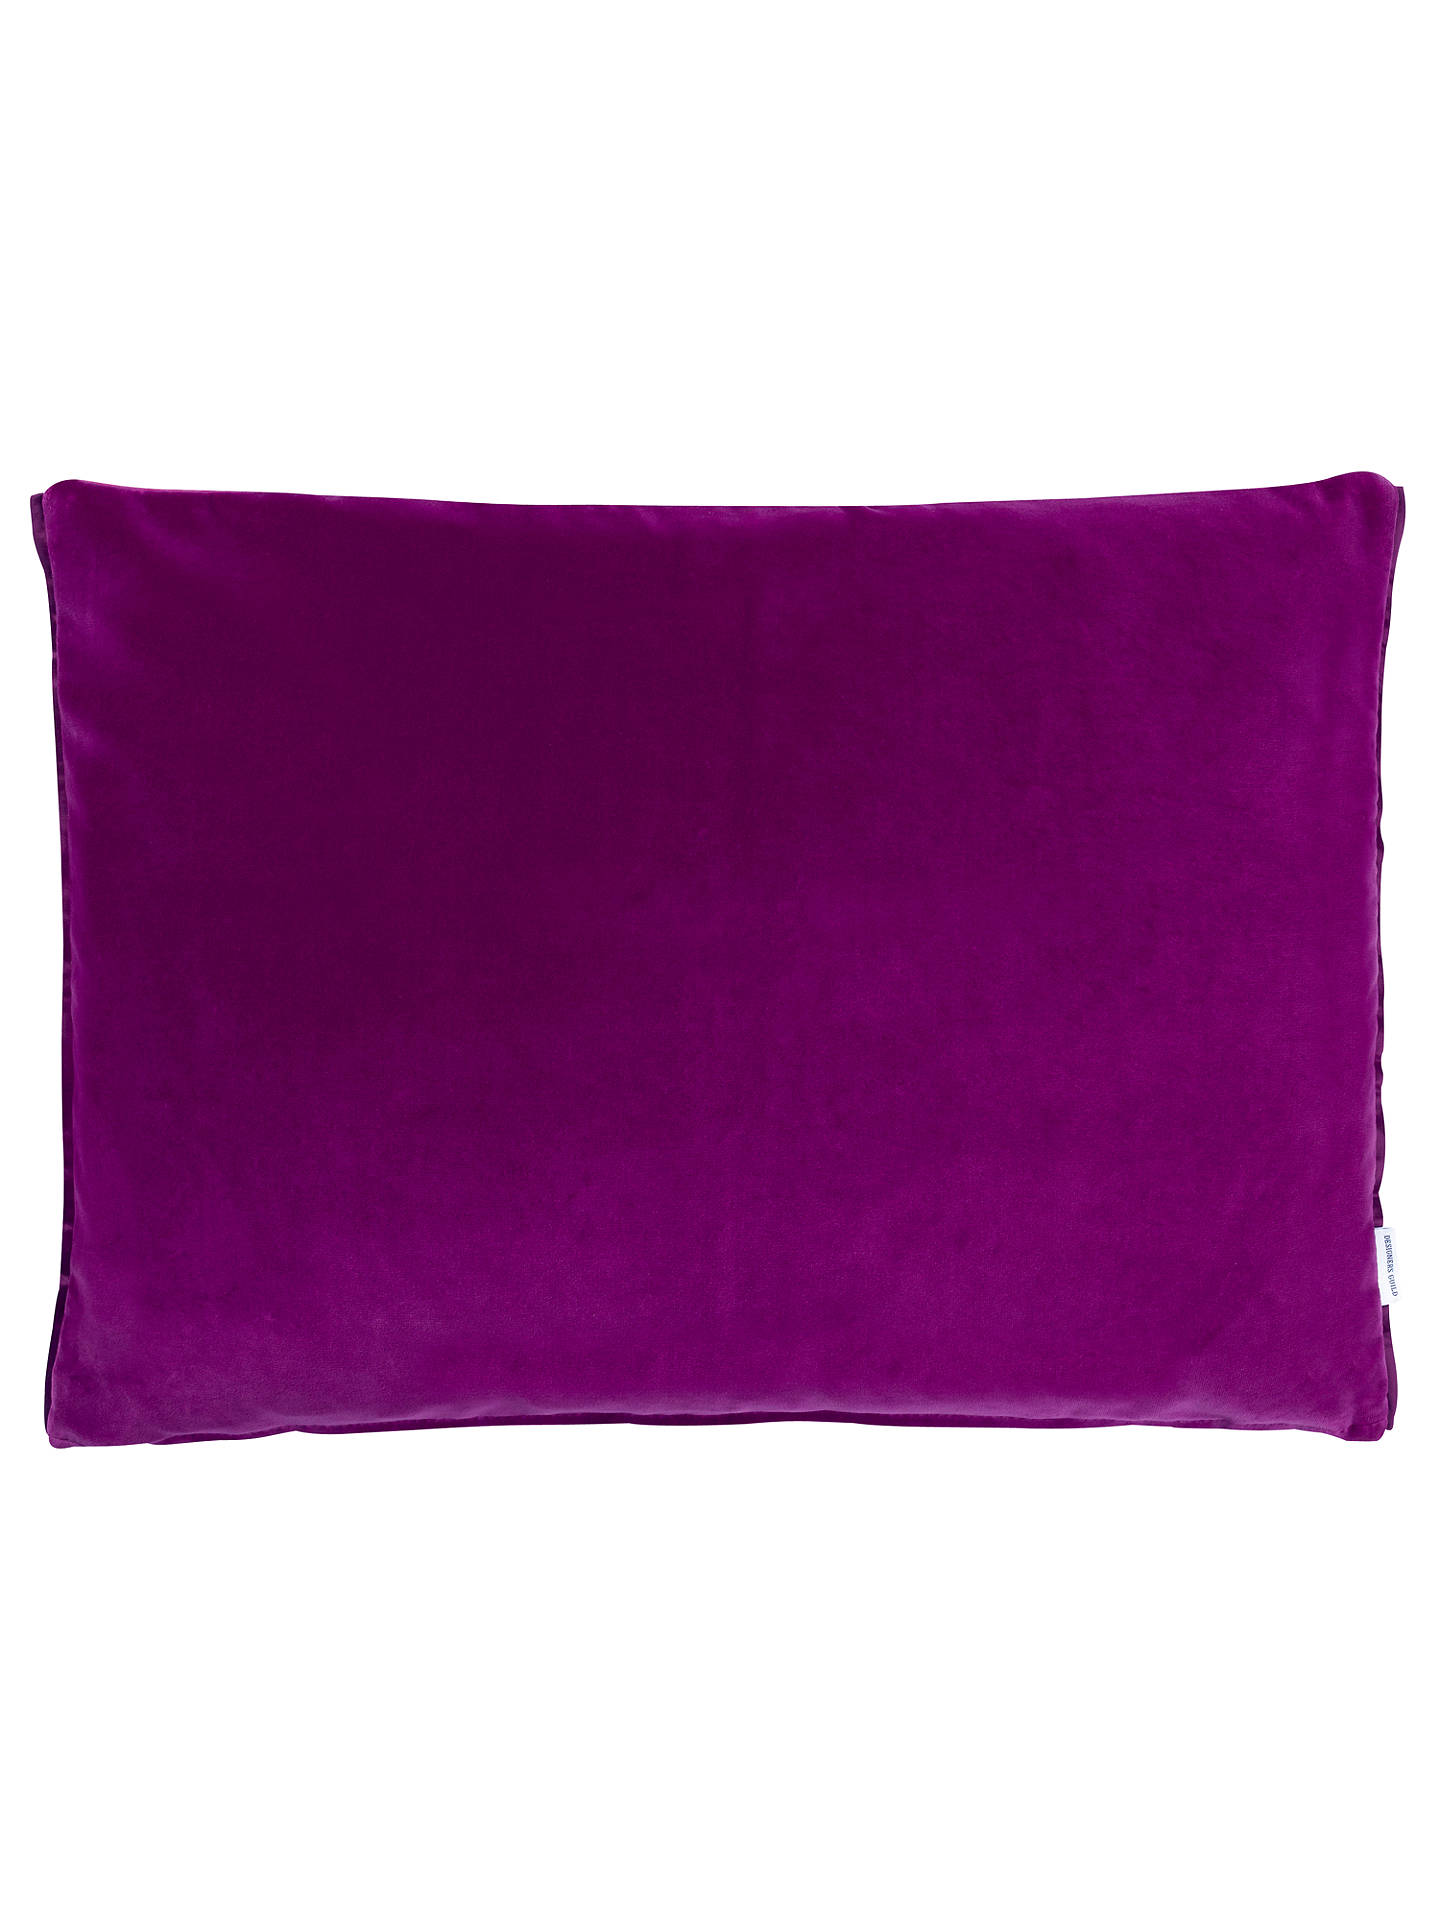 Buy Designers Guild Cassia Velvet Cushion, Magenta / Damson Online at johnlewis.com